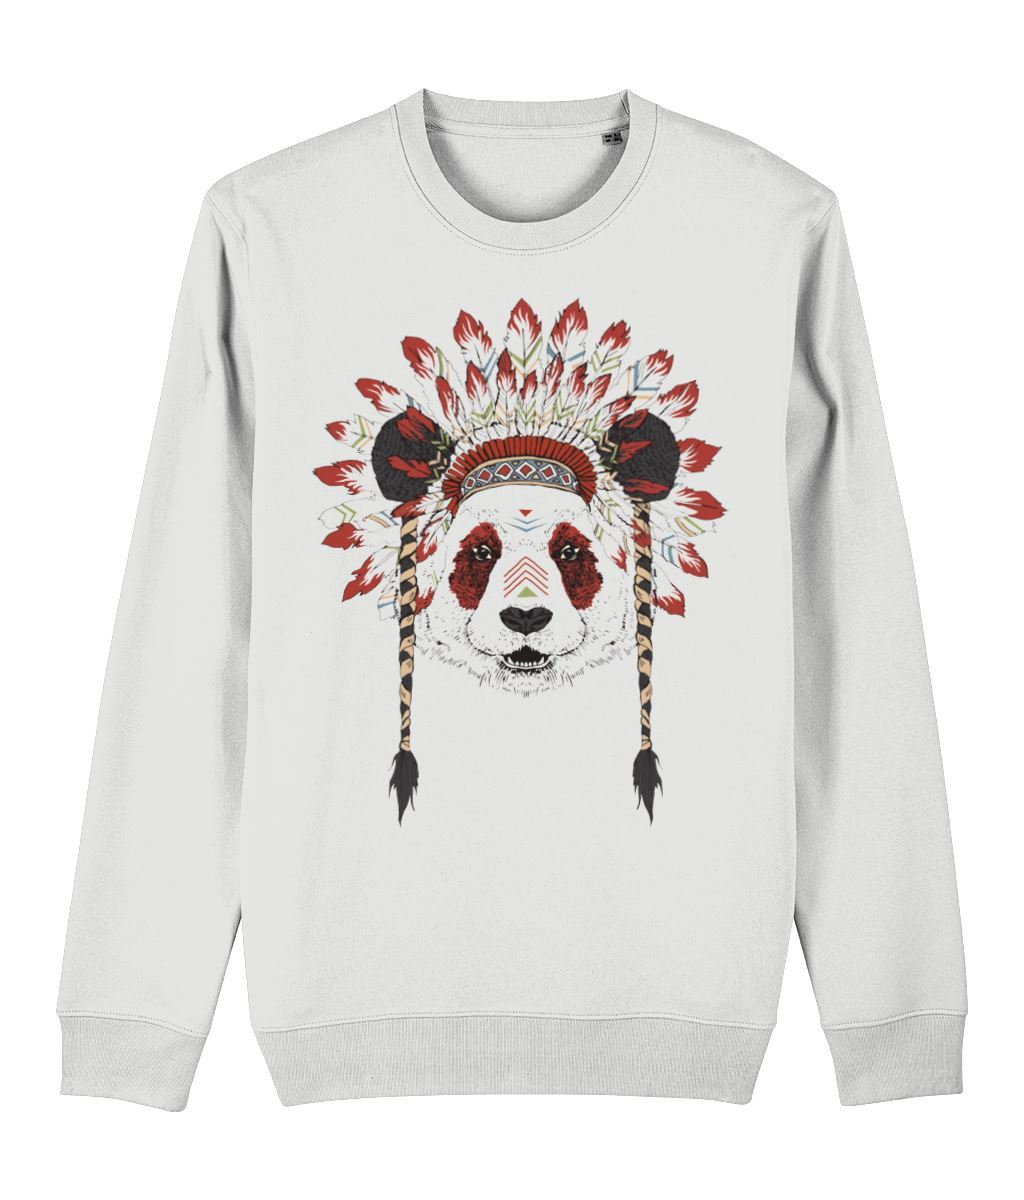 Bohemian Panda Sweatshirt Clothing IndianBelieves White X-Small